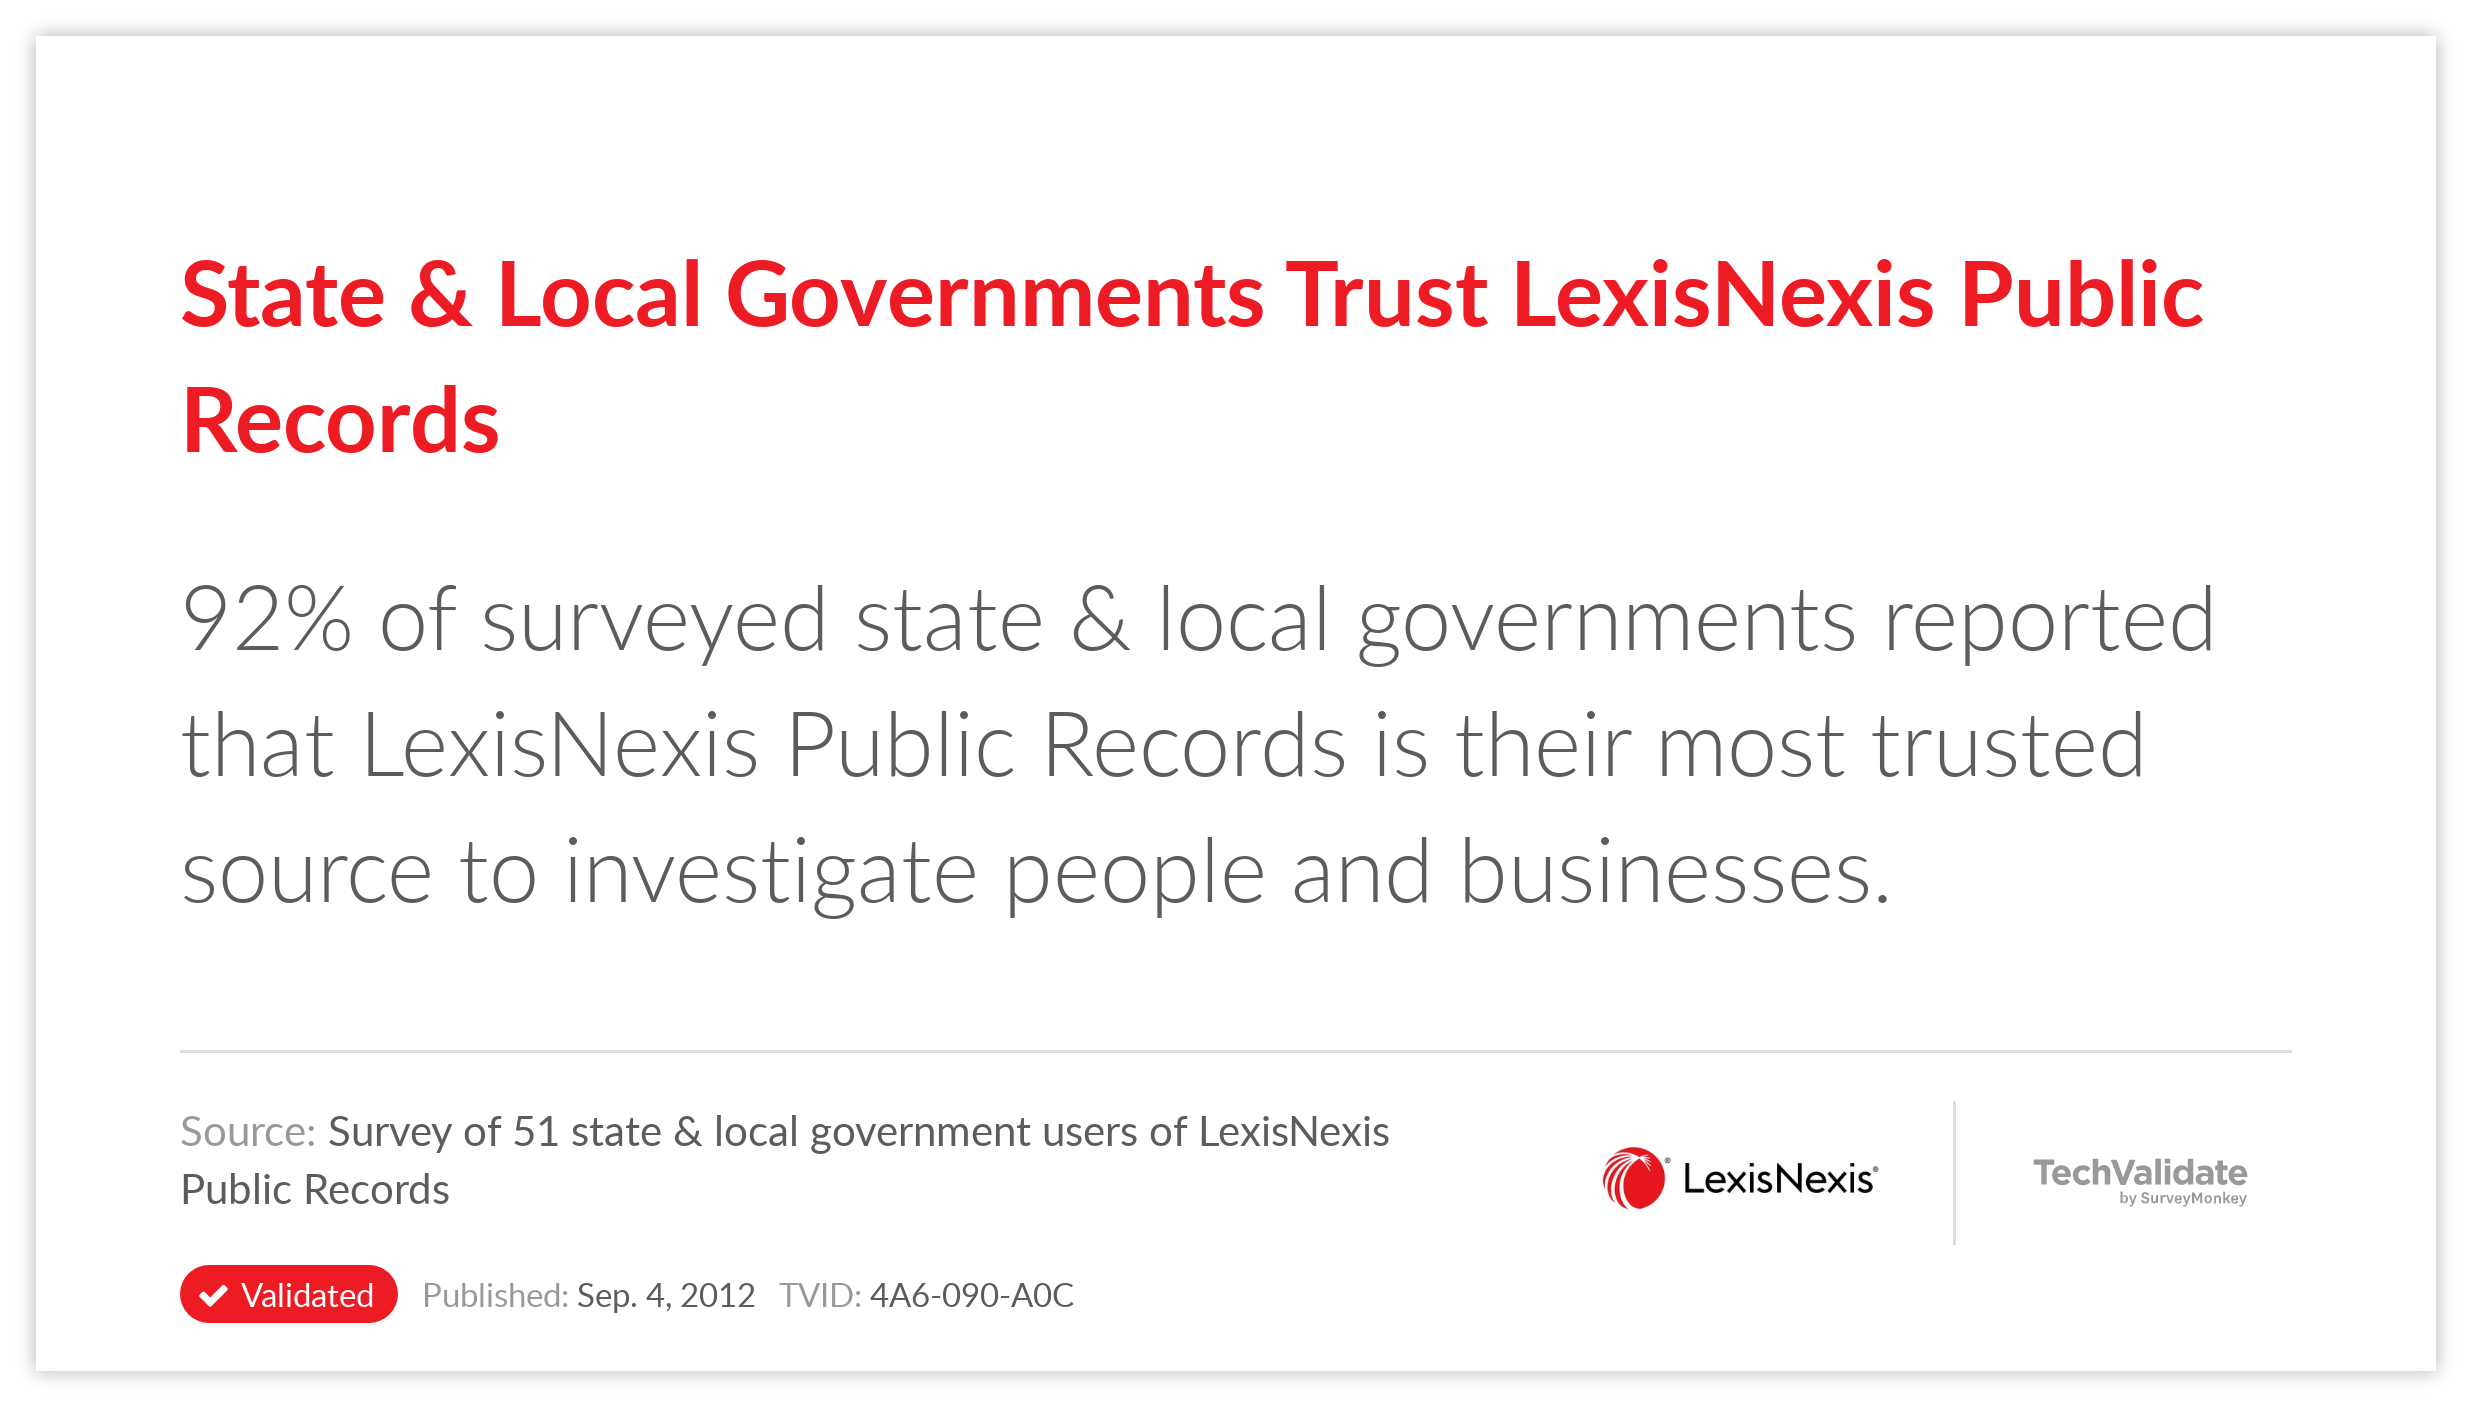 State & Local Governments Trust LexisNexis Public Records